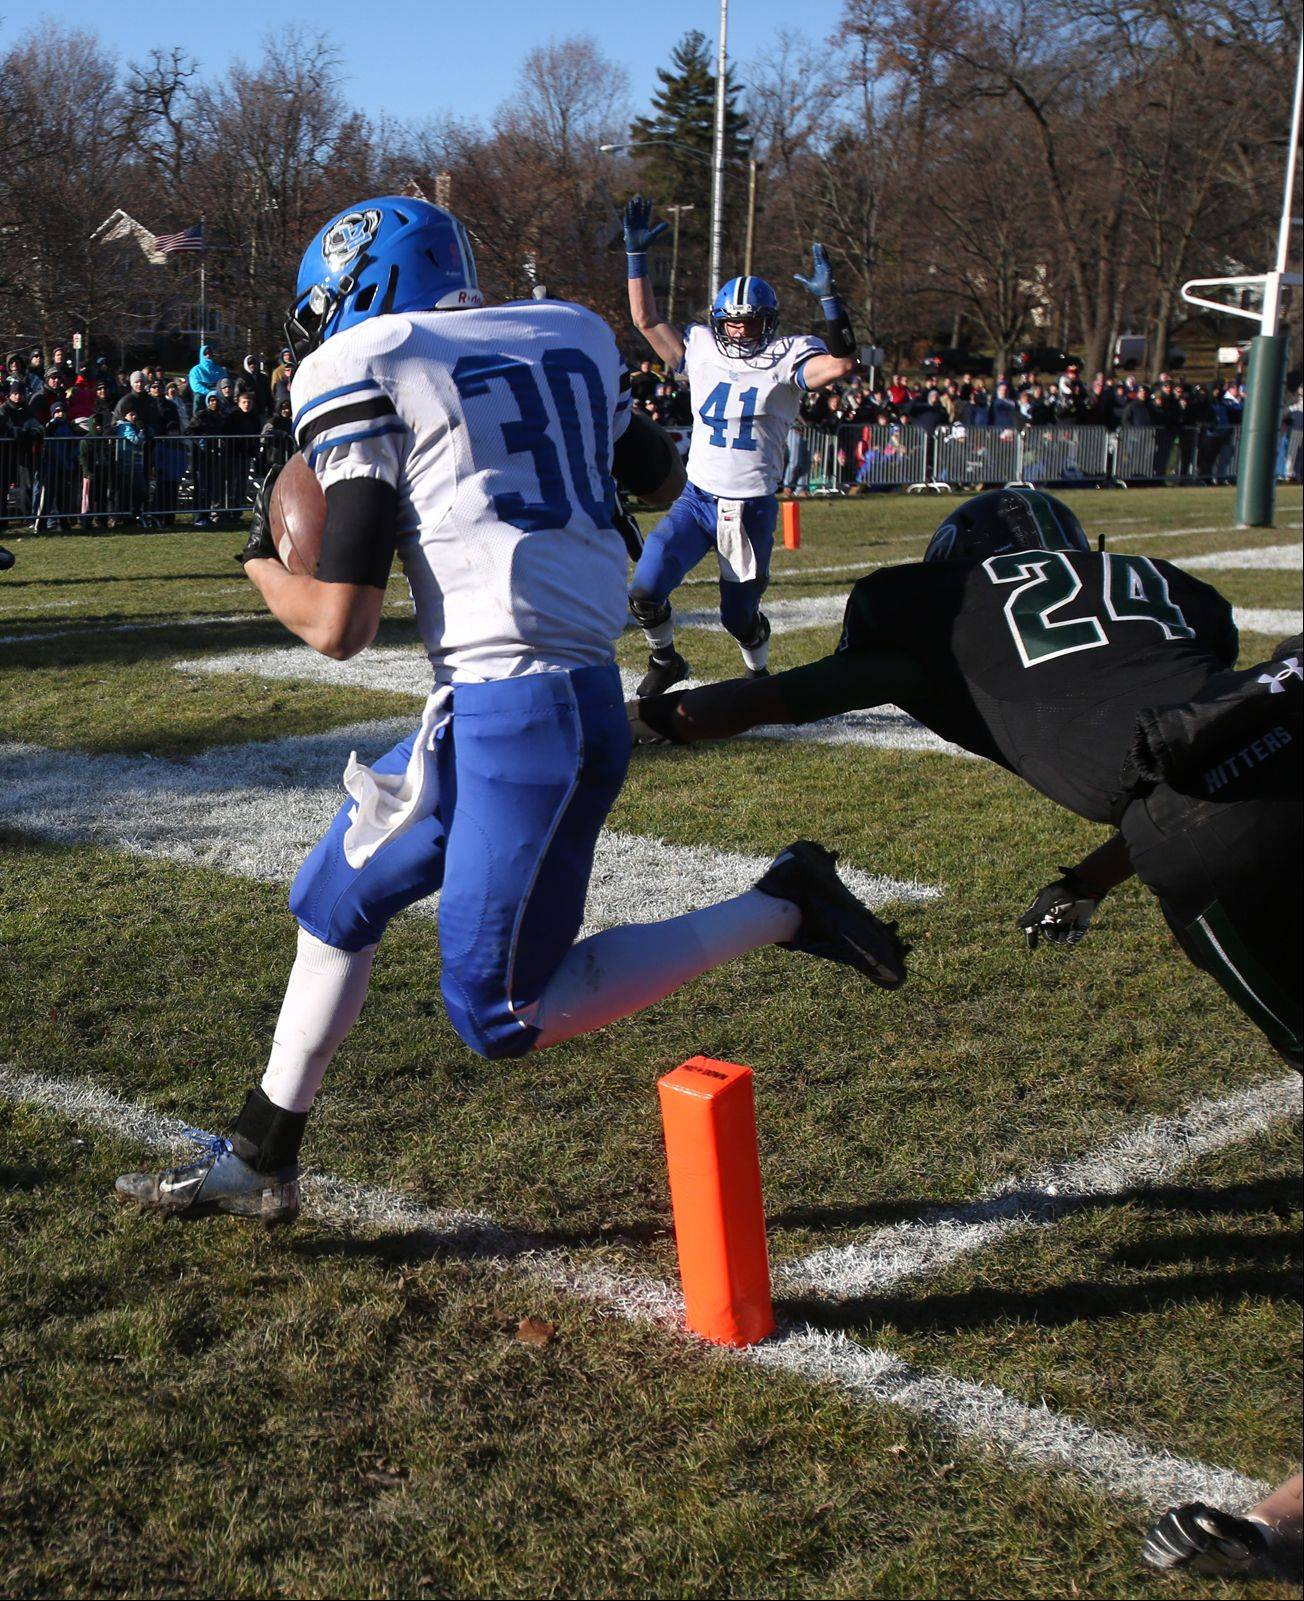 Lake Zurich's Ben Klett scores the first Bears touchdown past Glenbard West's Ryan Thomas during the Class 7A Semifinal Football Playoffs in Glen Ellyn. The Bears Colton Wagner (41), signals the call.